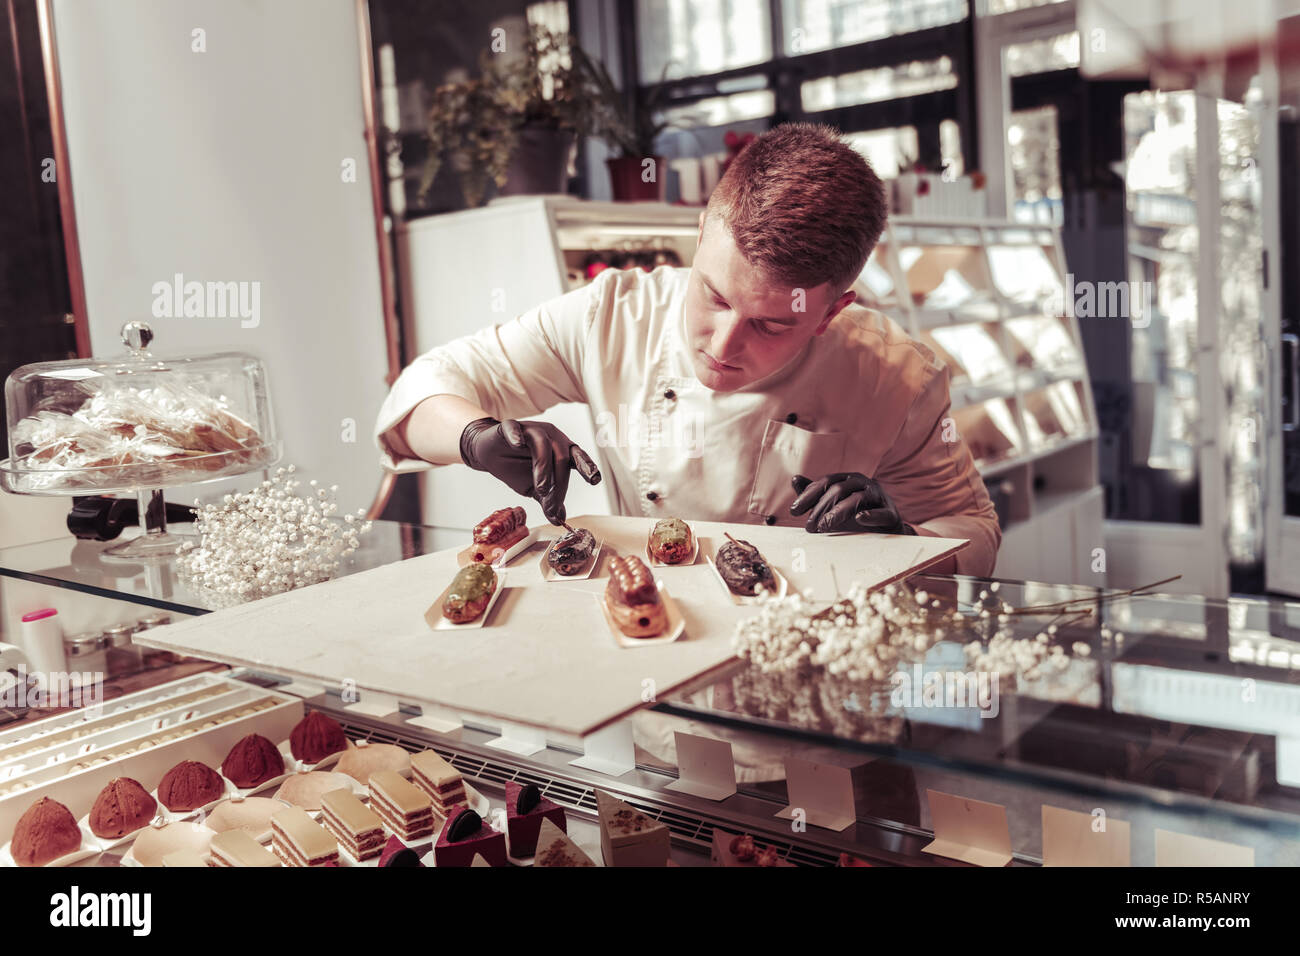 Sweet cakes. Nice professional confectioner looking at the tasty eclairs while decorating them - Stock Image